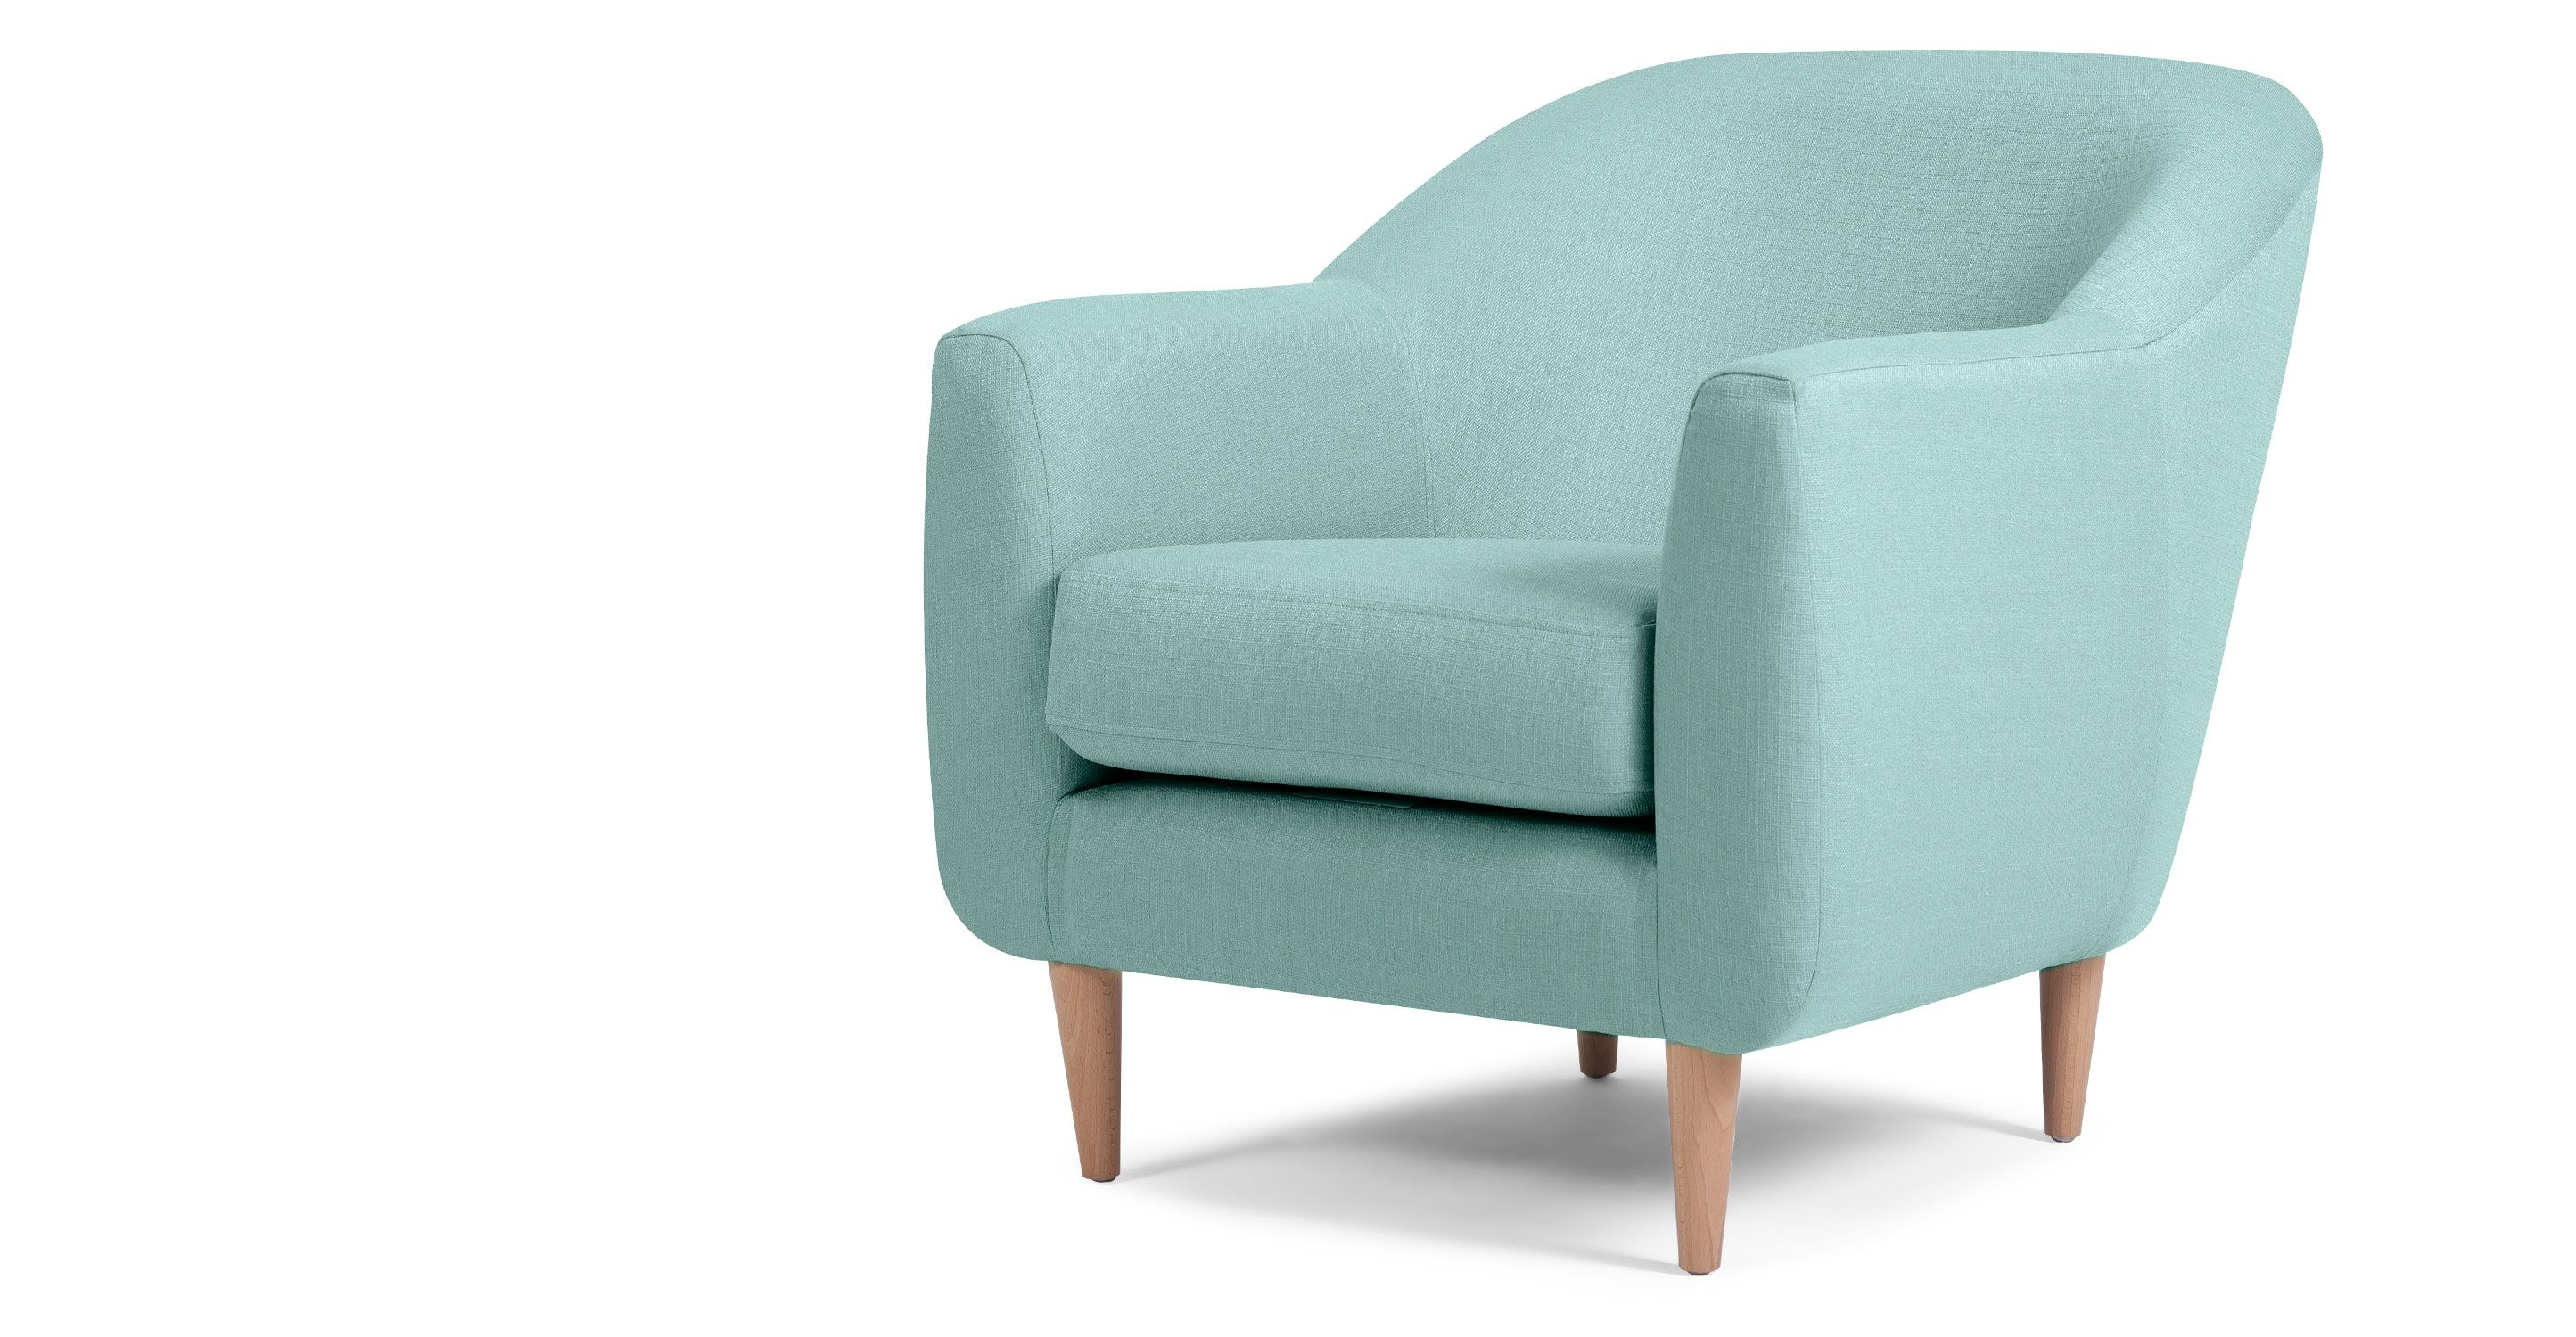 Tubby Armchair in turquoise blue made